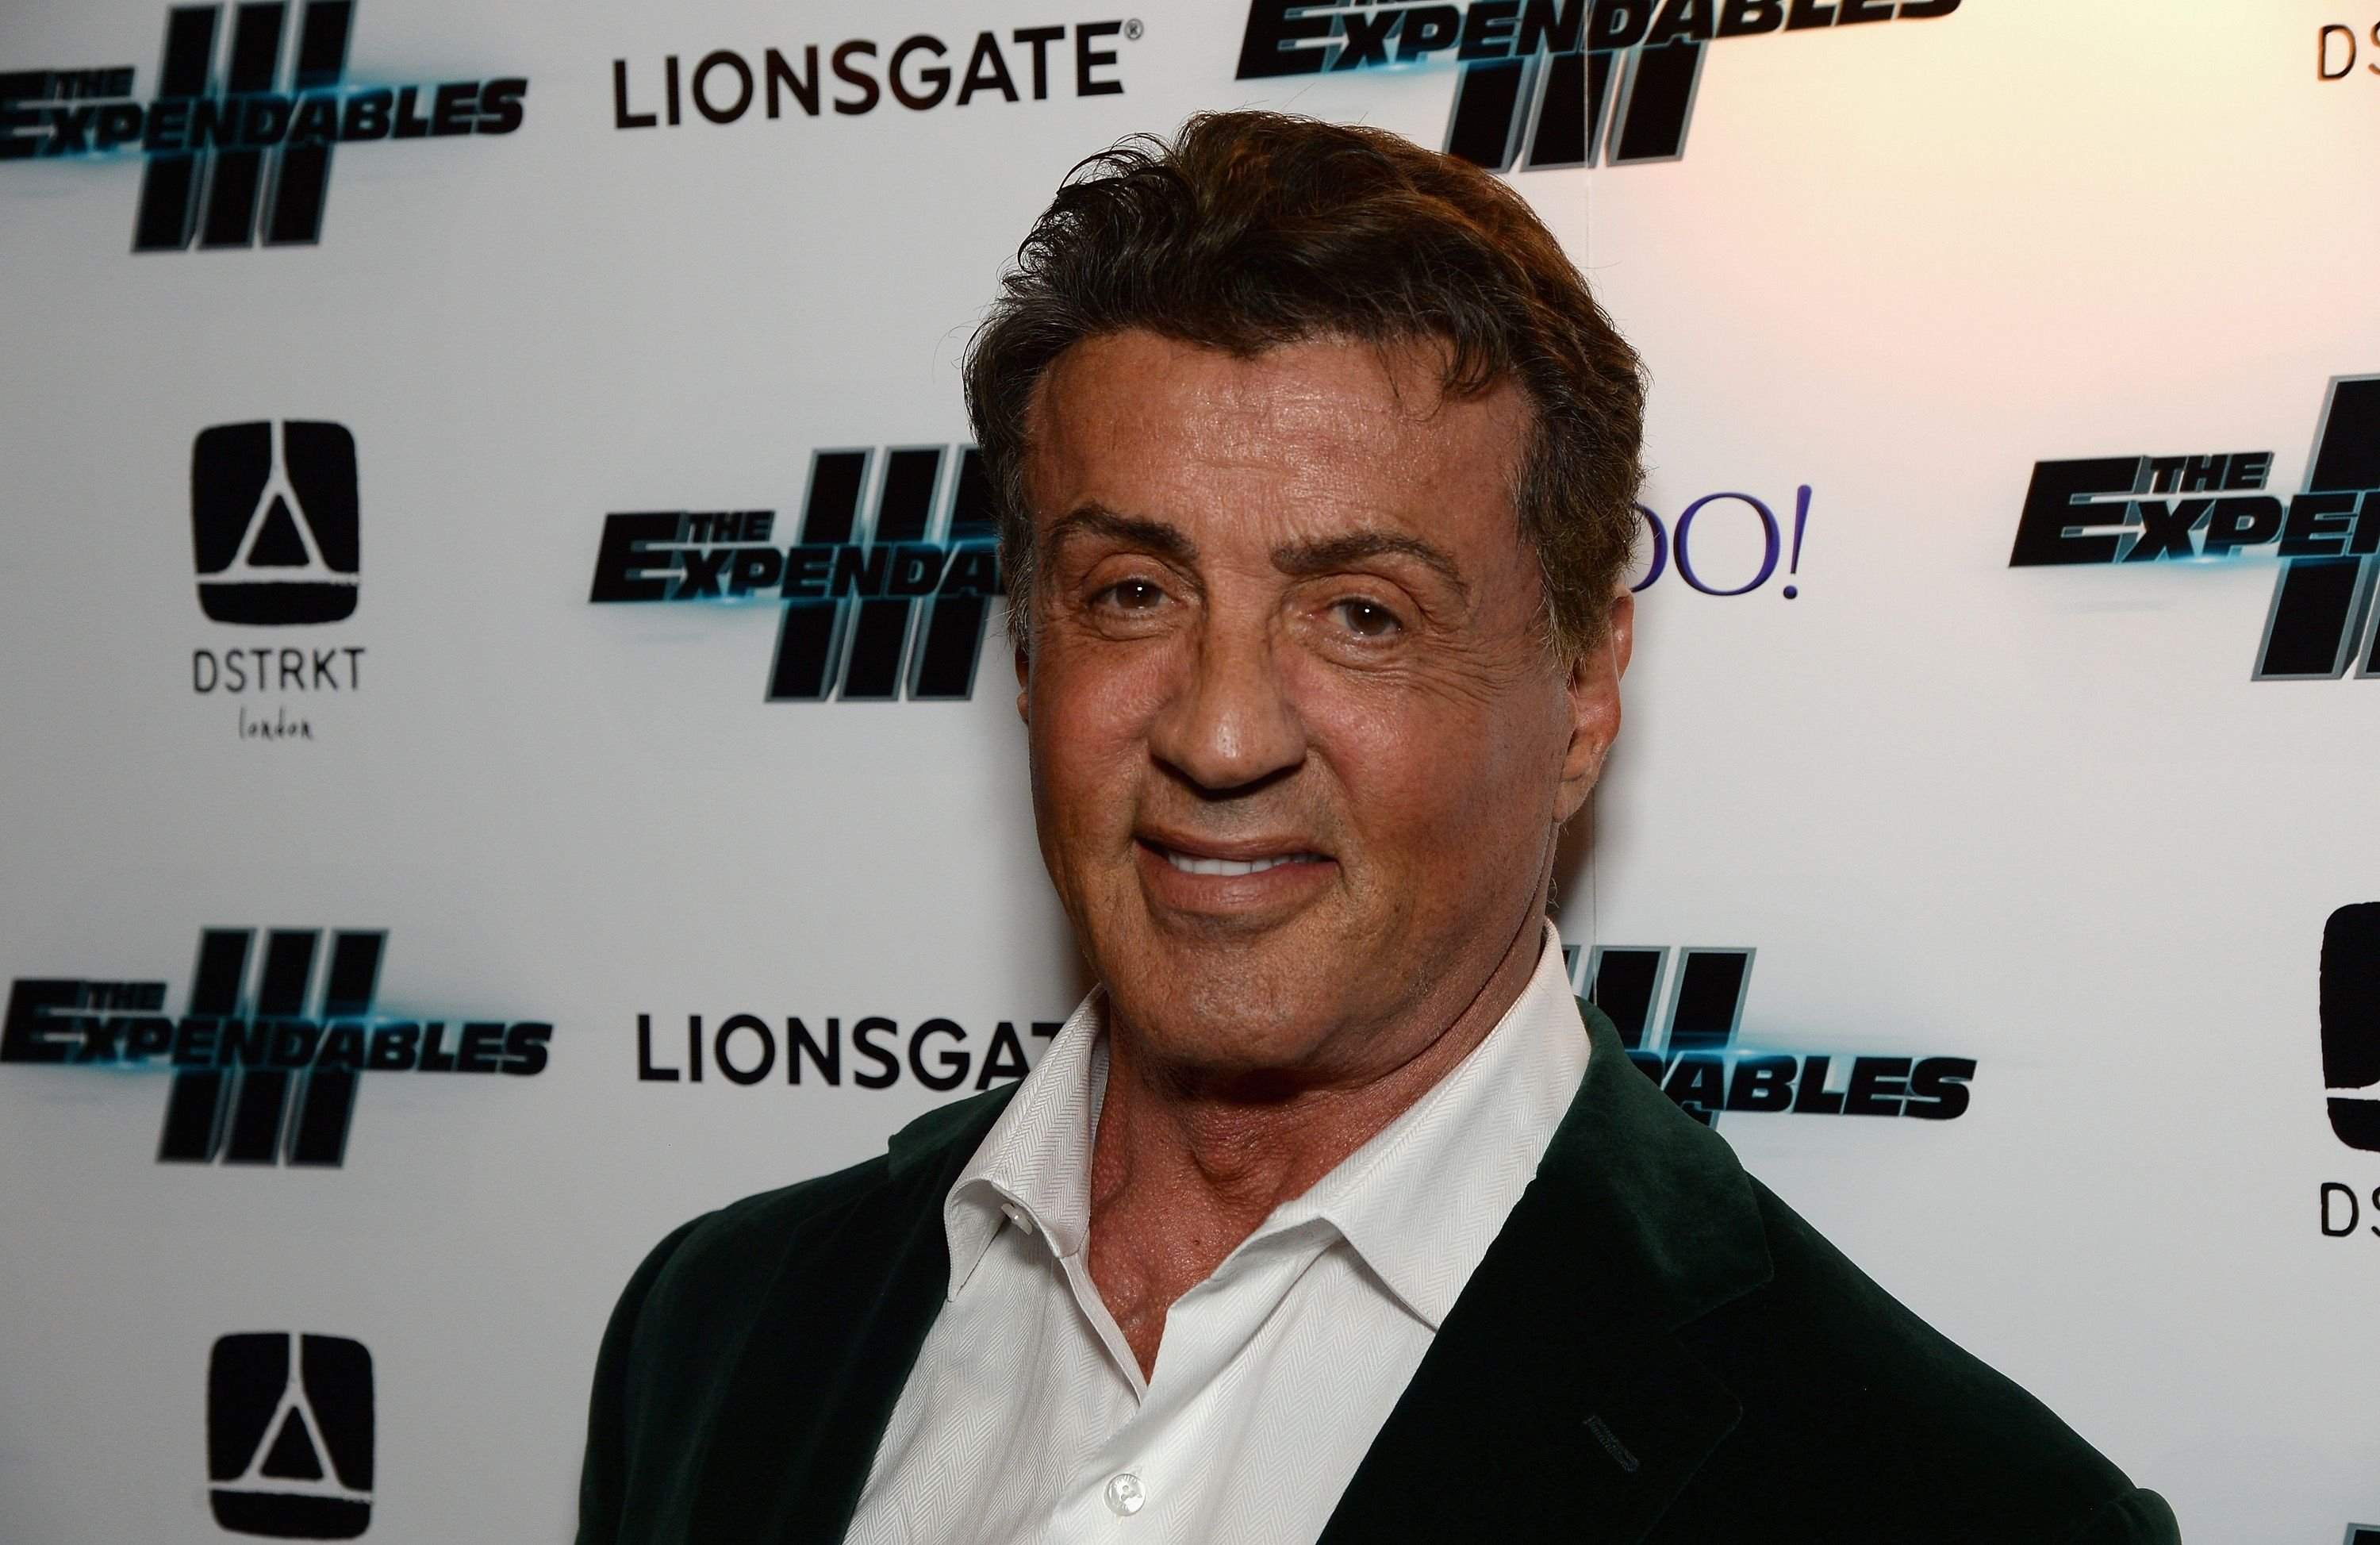 """Sylvester Stallone during """"The Expendables 3"""" after party at Dstrkt on August 4, 2014 in London, England. The Expendables 3 is released on August 14, 2014. 